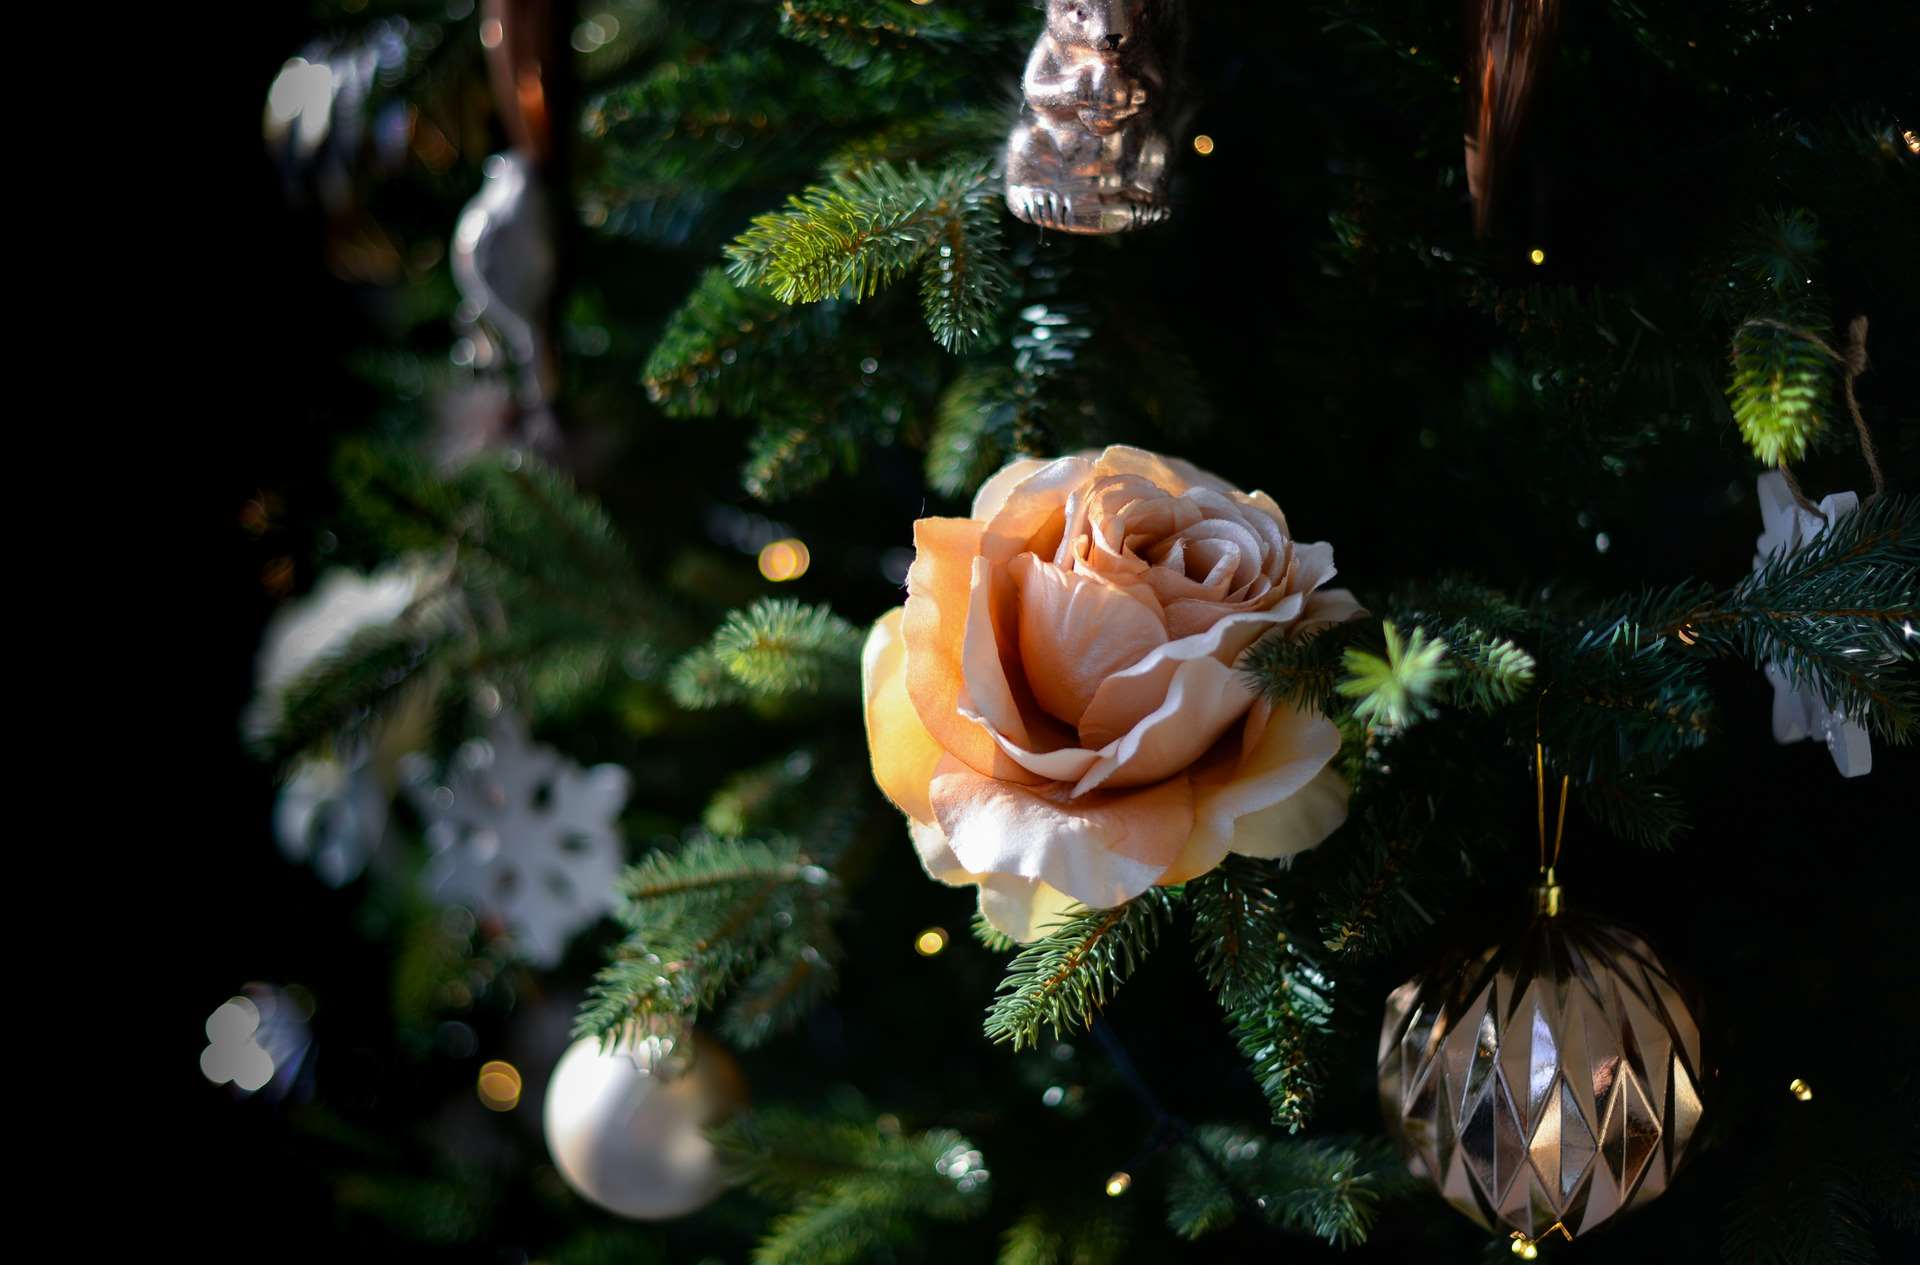 White rose used as a decoration in a christmas tree